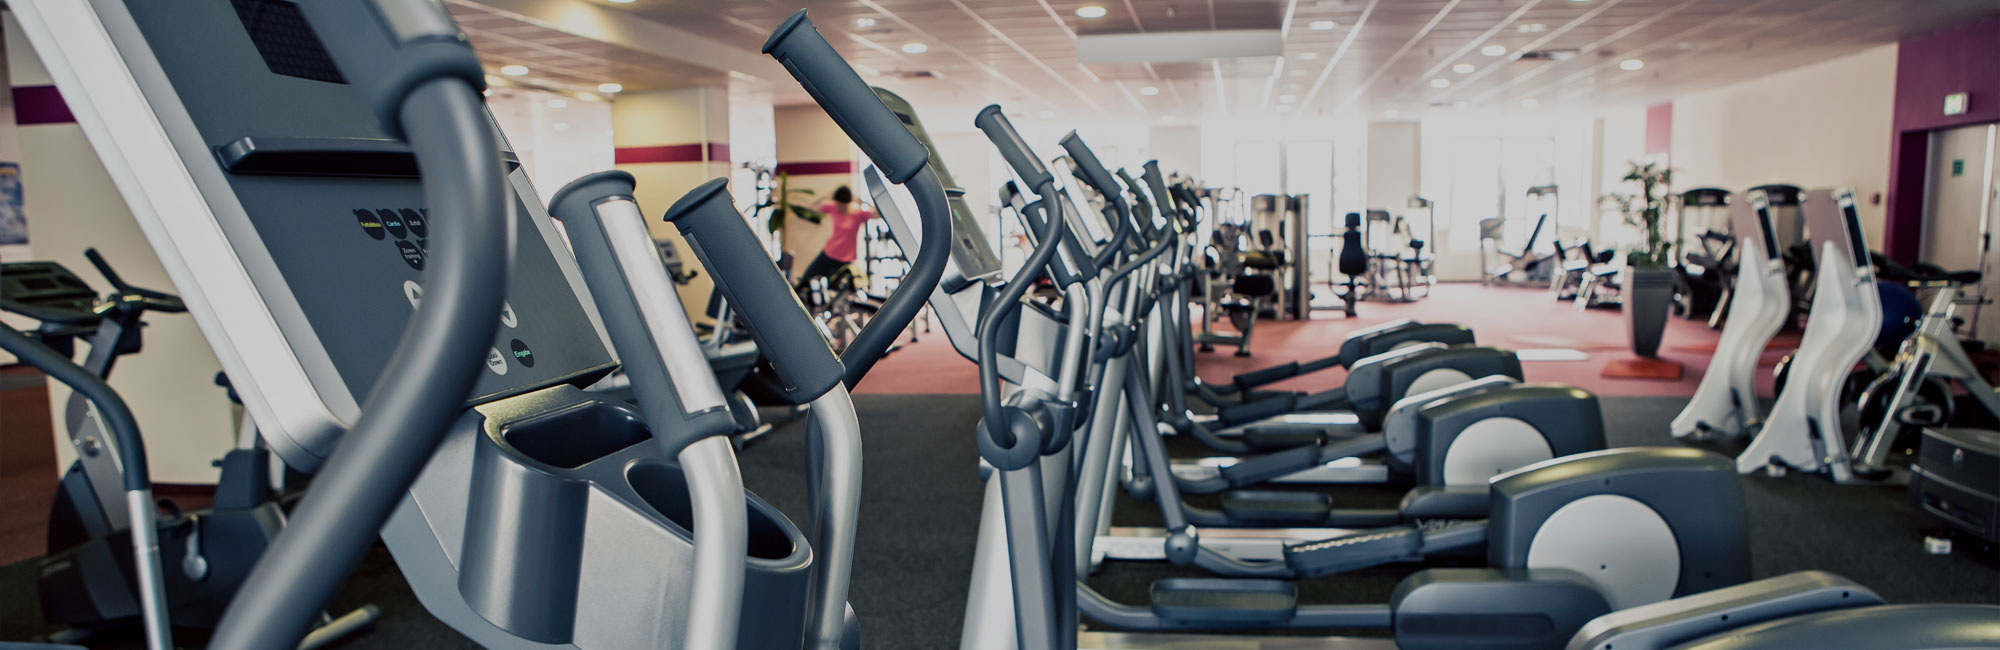 Equipment in gym in Wirral